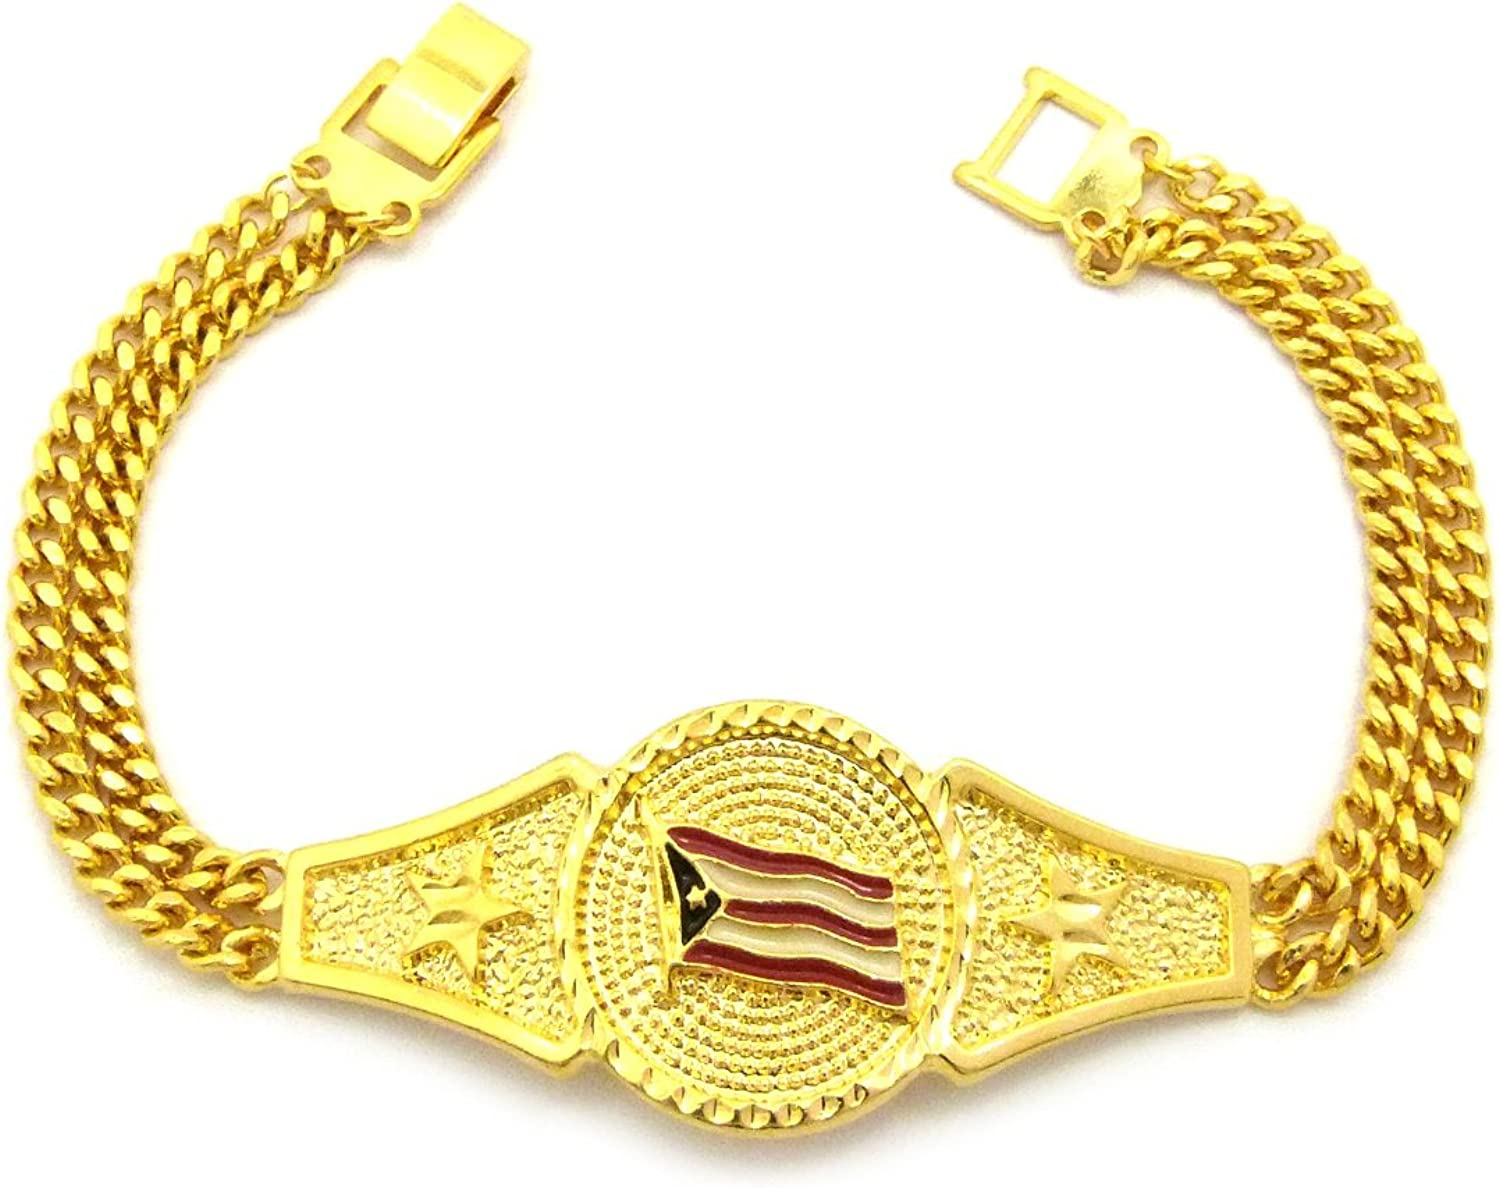 "Fashion 21 Unisex Puerto Rico Flag Piece 3mm 7.75"" Link Chain Bracelet in Gold Tone"